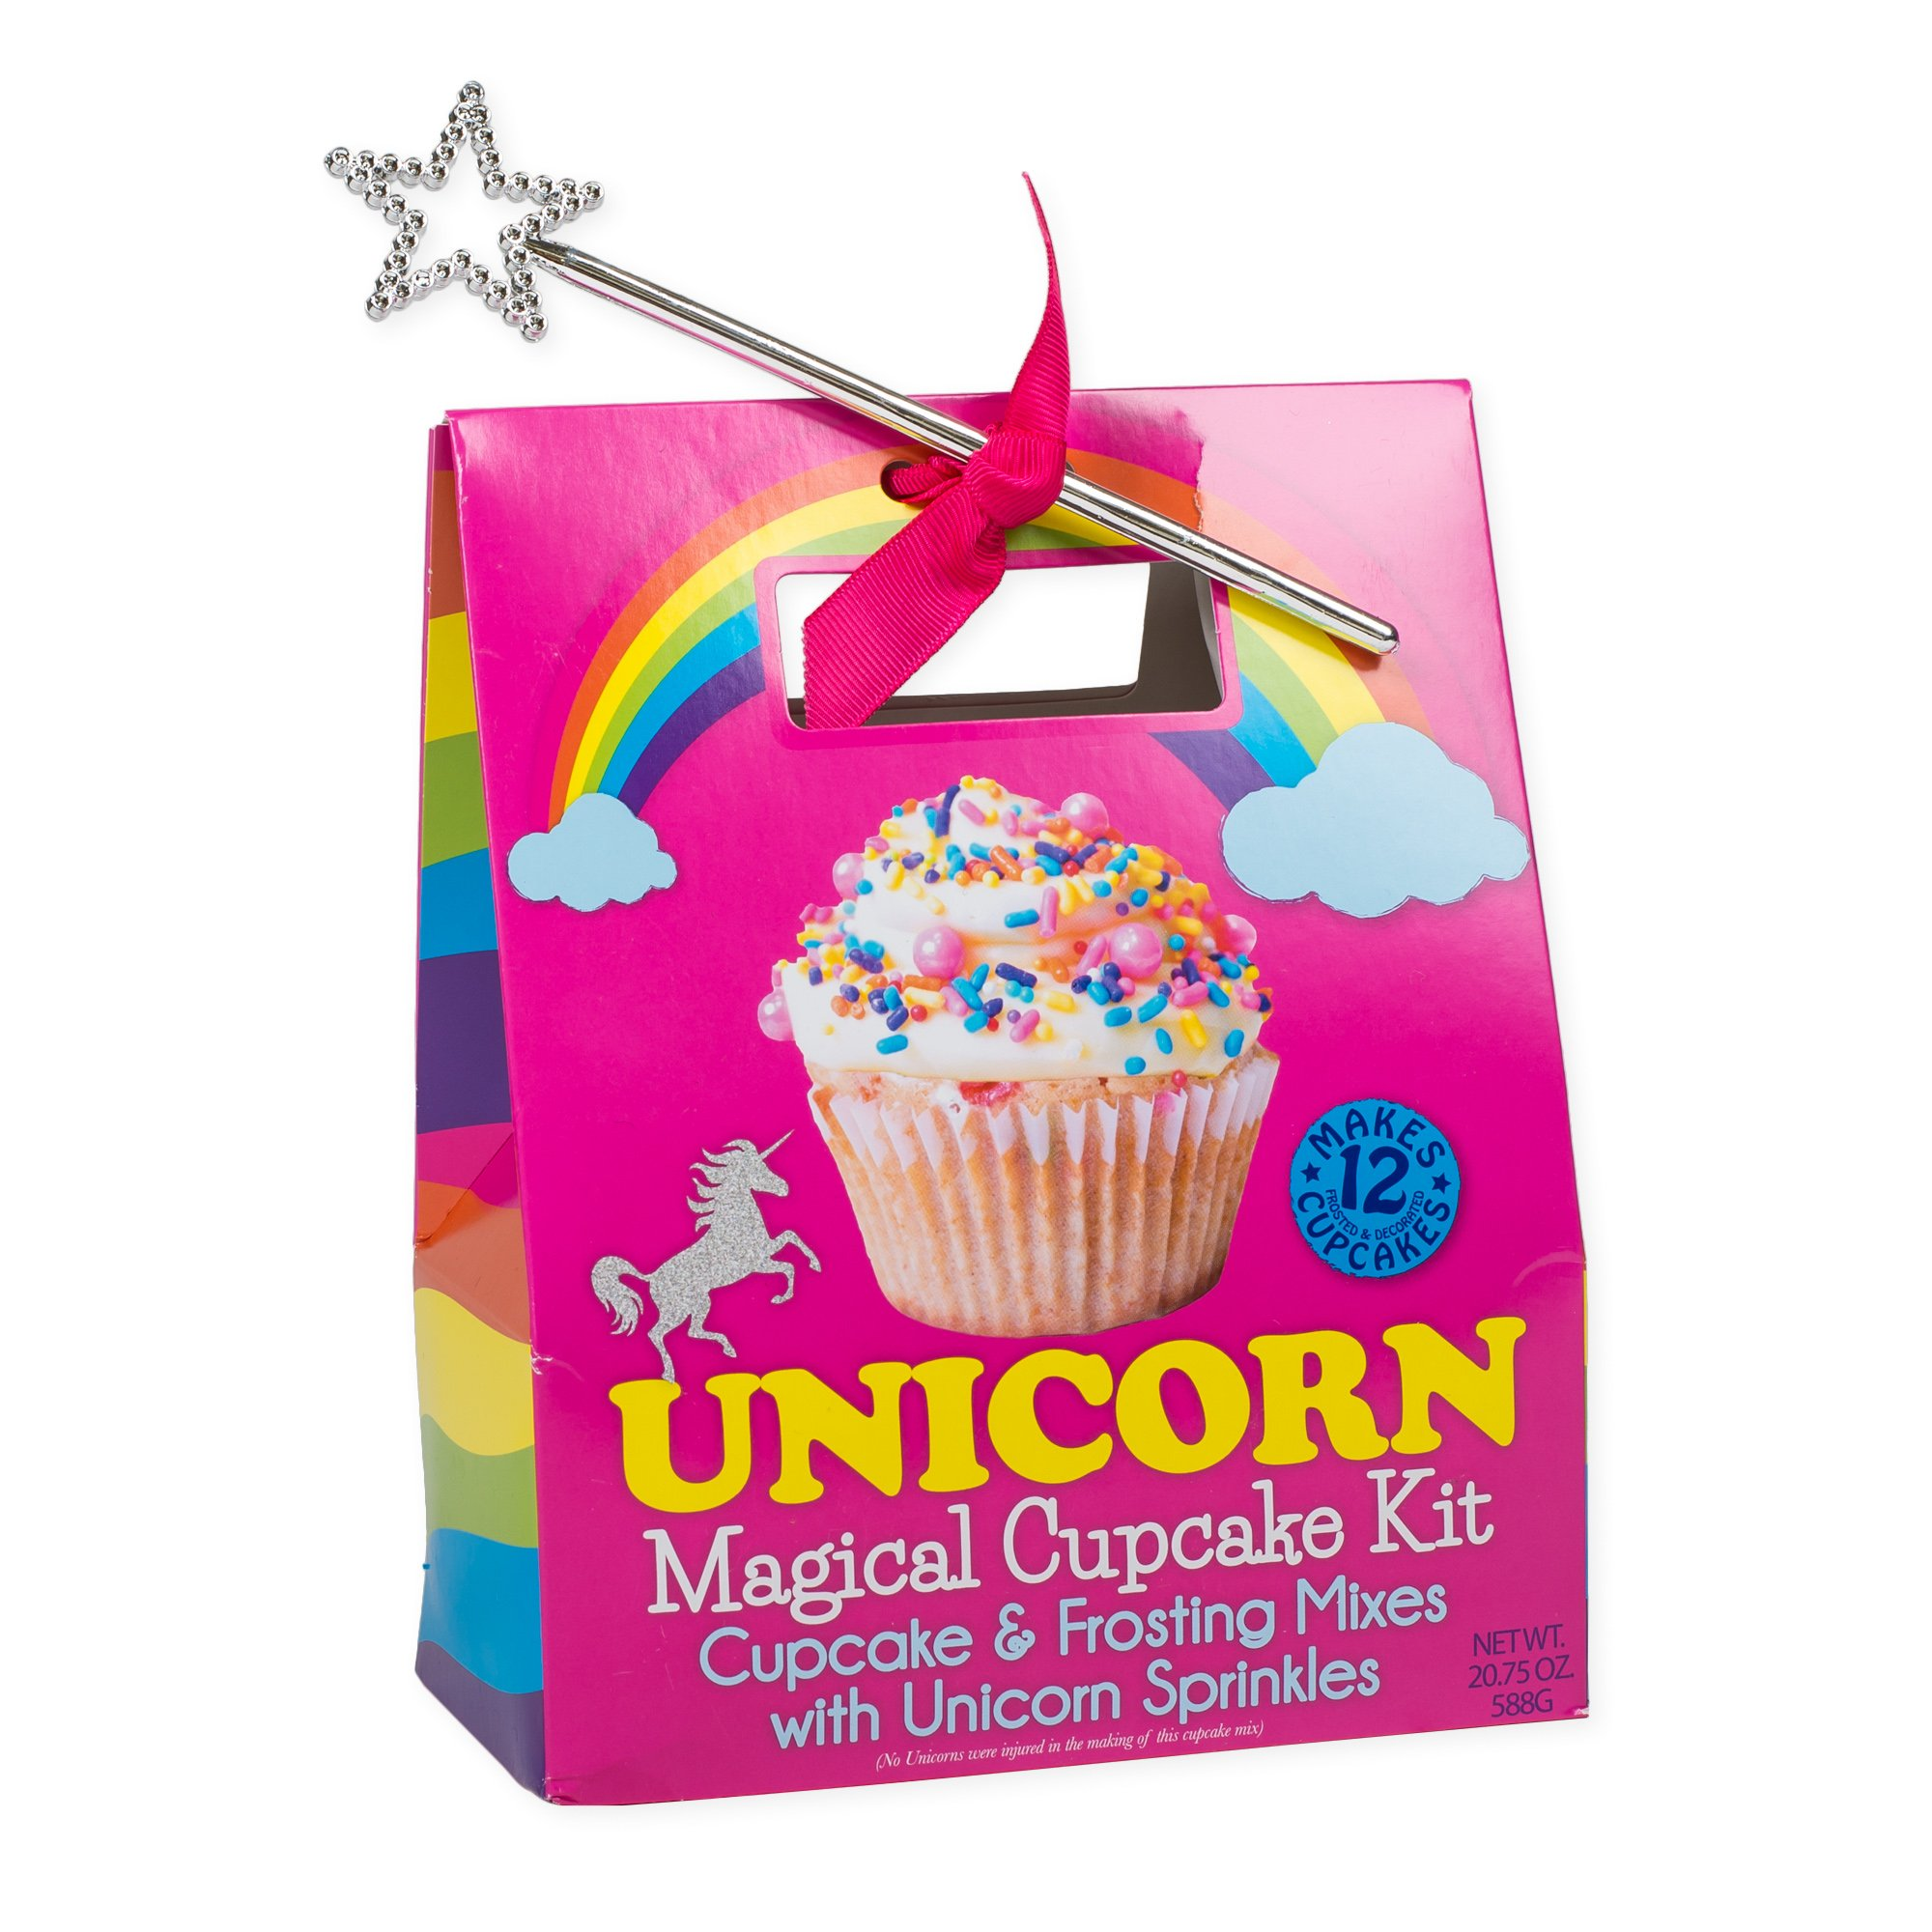 Unicorn Magical Cupcake Mix and Sprinkles with Star Wand Carry Out Box Set by Pelican Bay